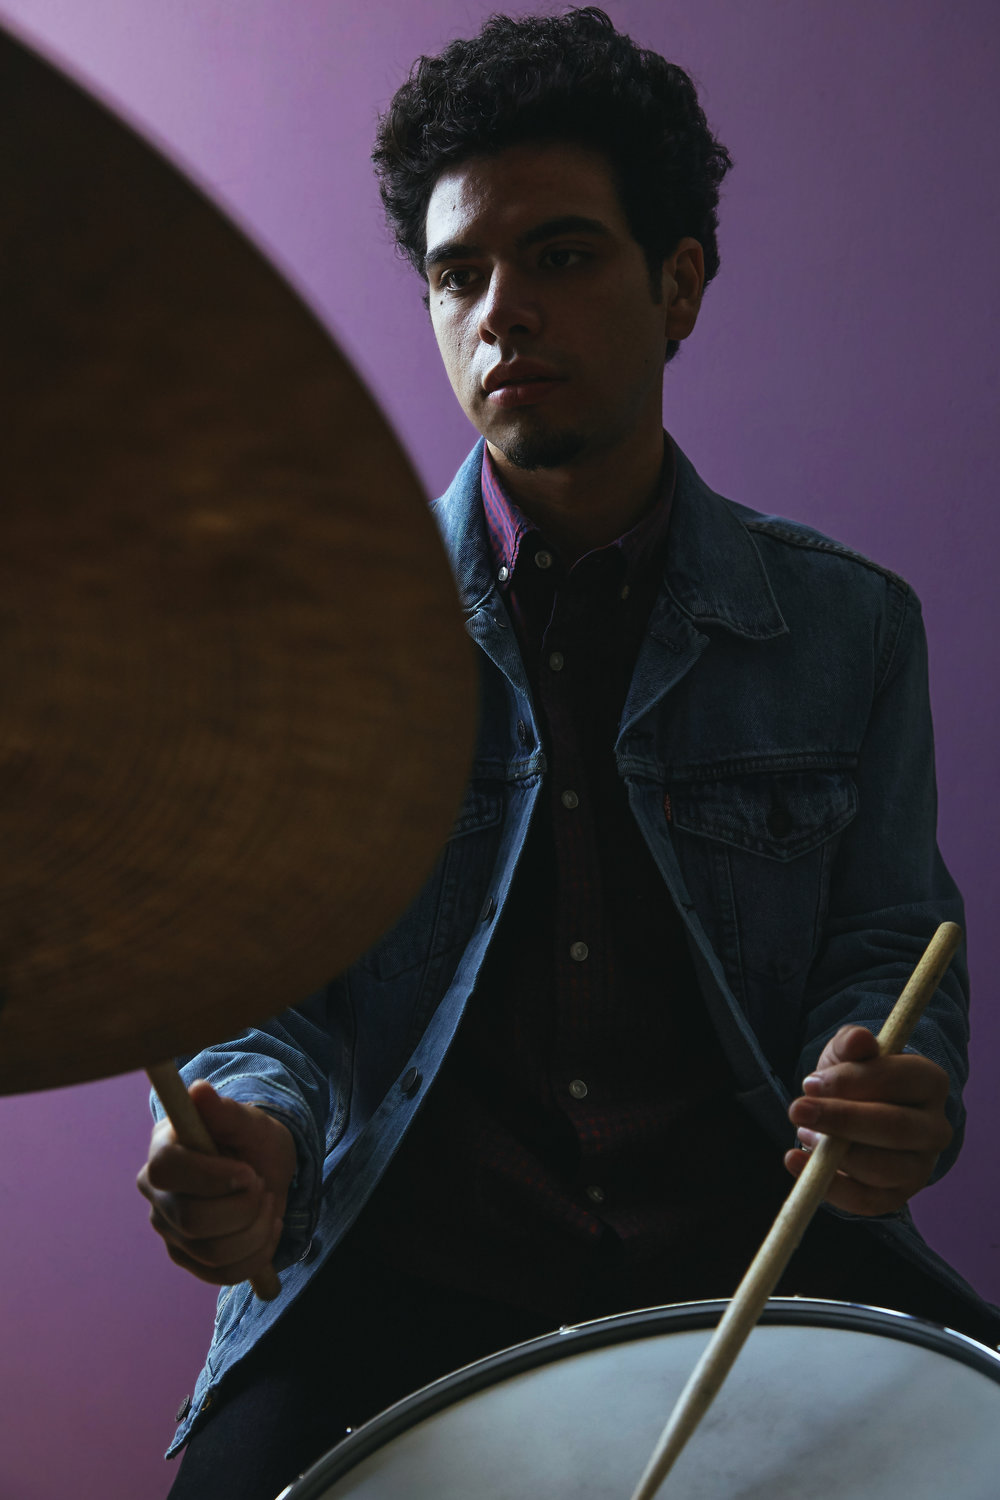 Diego Joaquin Rairez on Drums.jpg